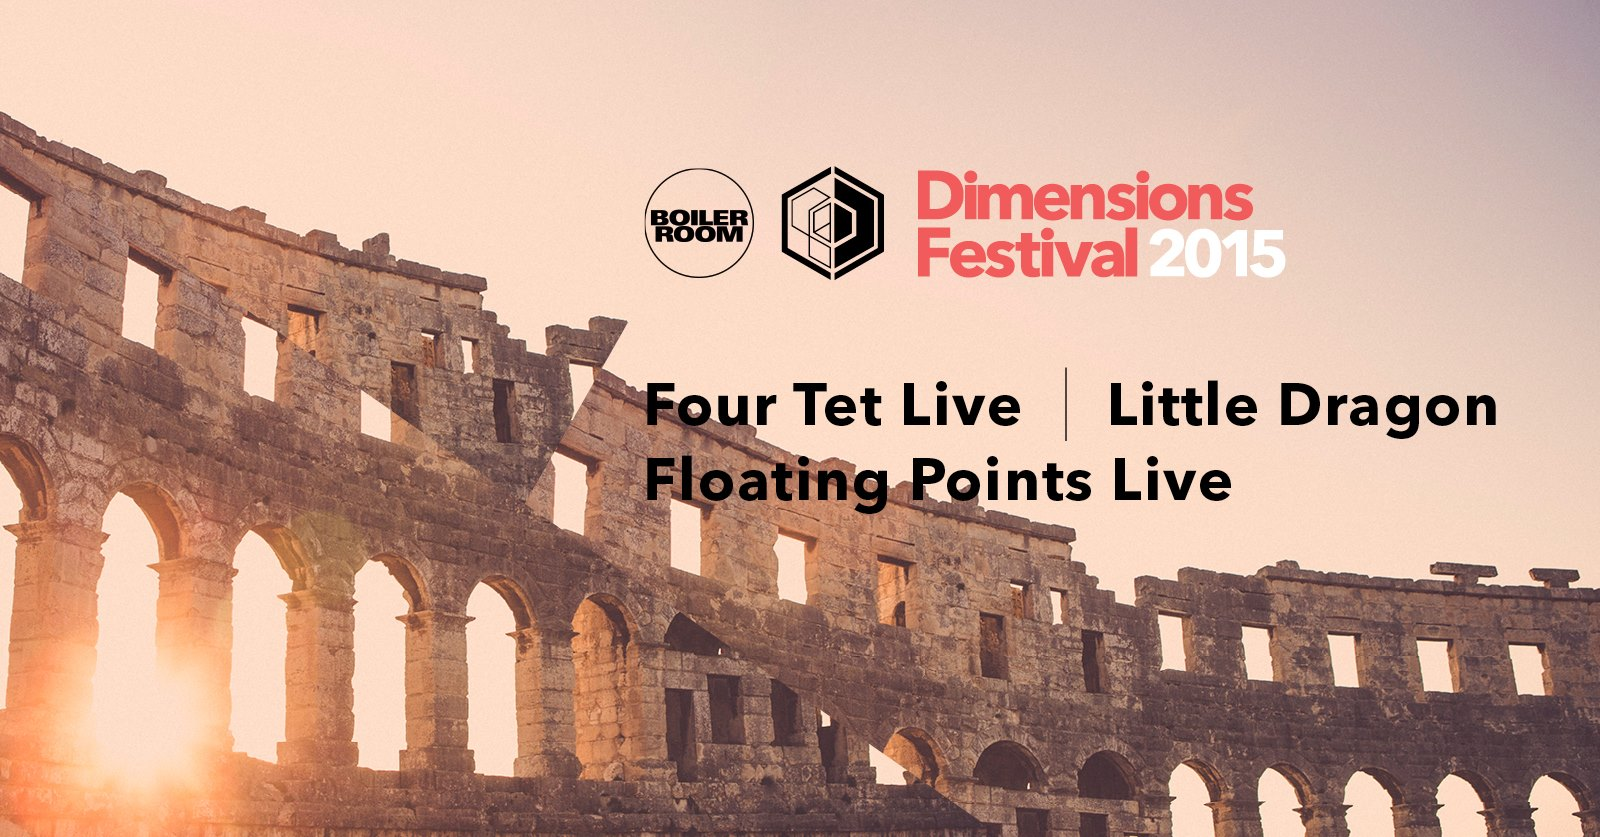 Dimensions Festival 2015 announce Four Tet, Little Dragon and Floating Points for Lineup